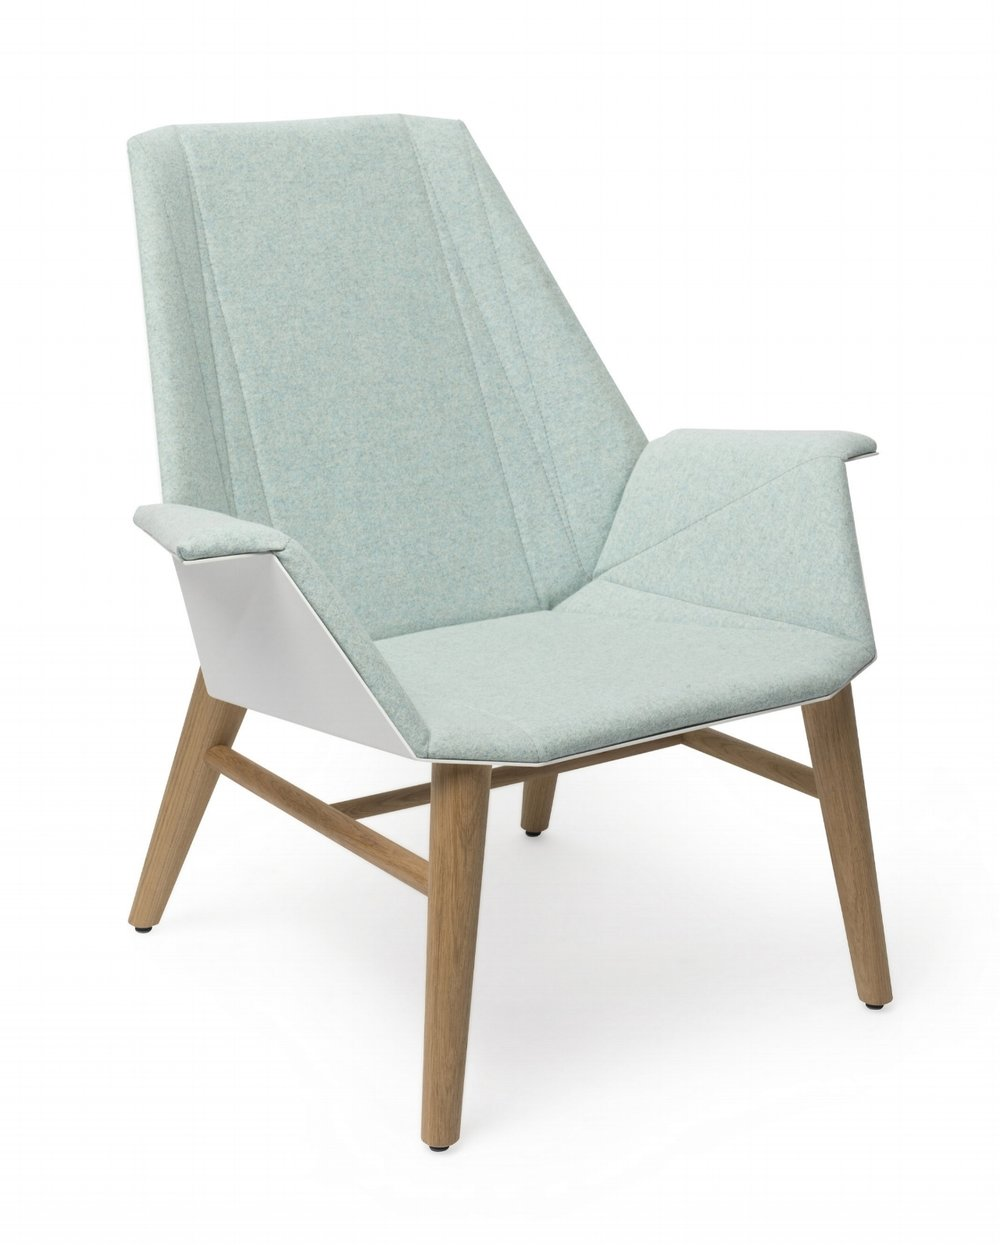 Alumni Lounge Wood white light blue upholstered_side angle.jpg